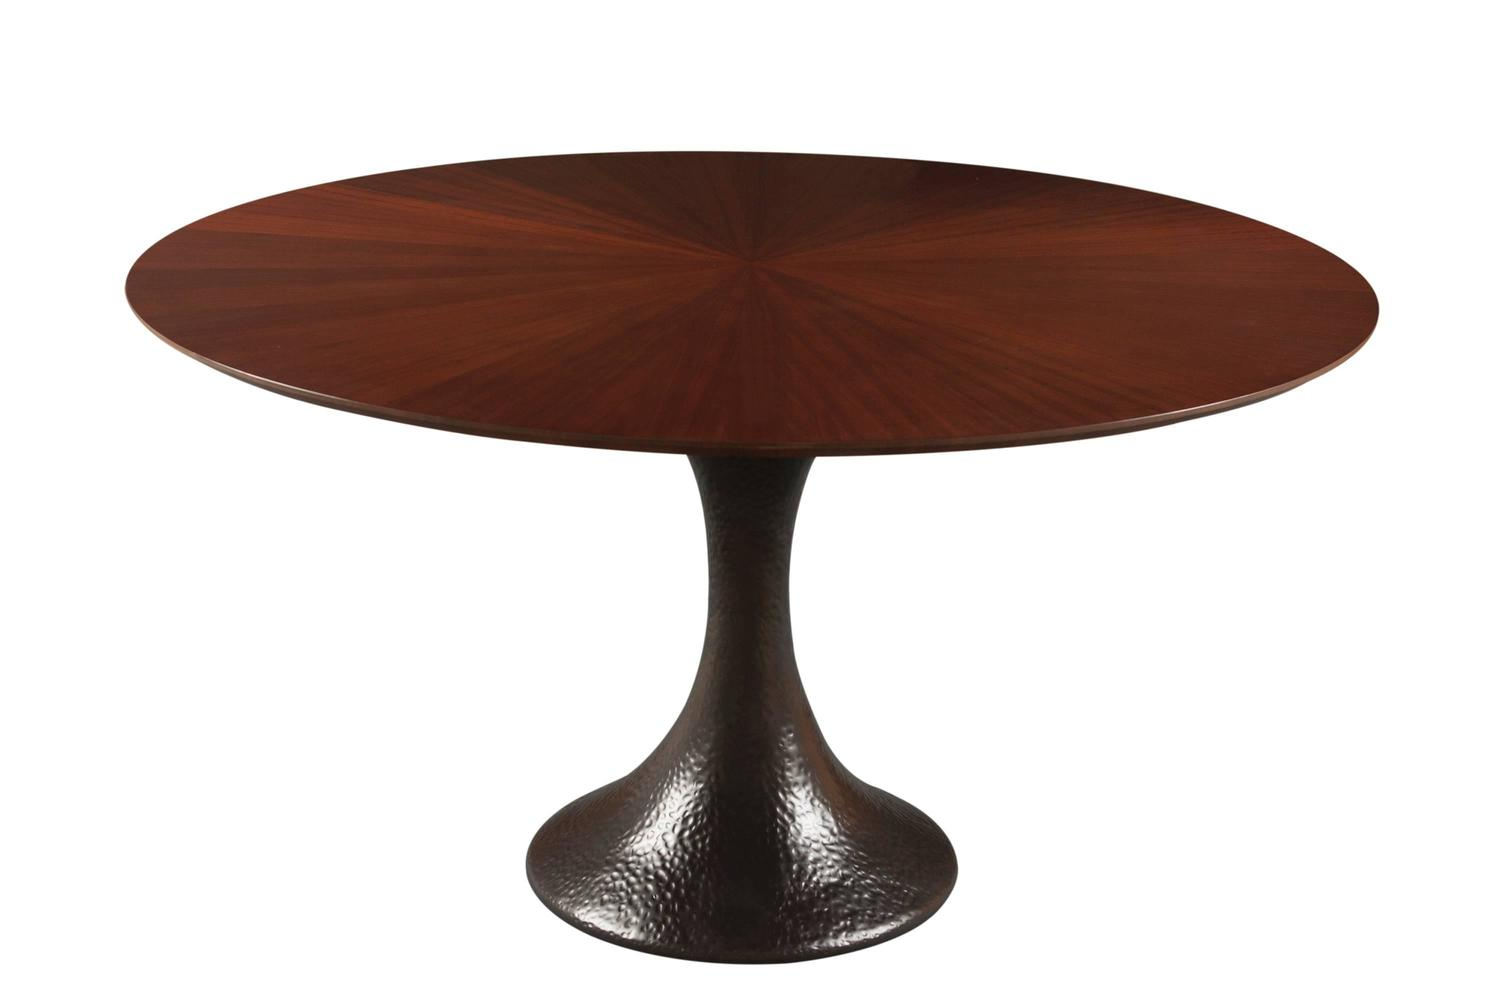 French Modern Oval Round Walnut Timber And Gold Or Color Resin Dining Table